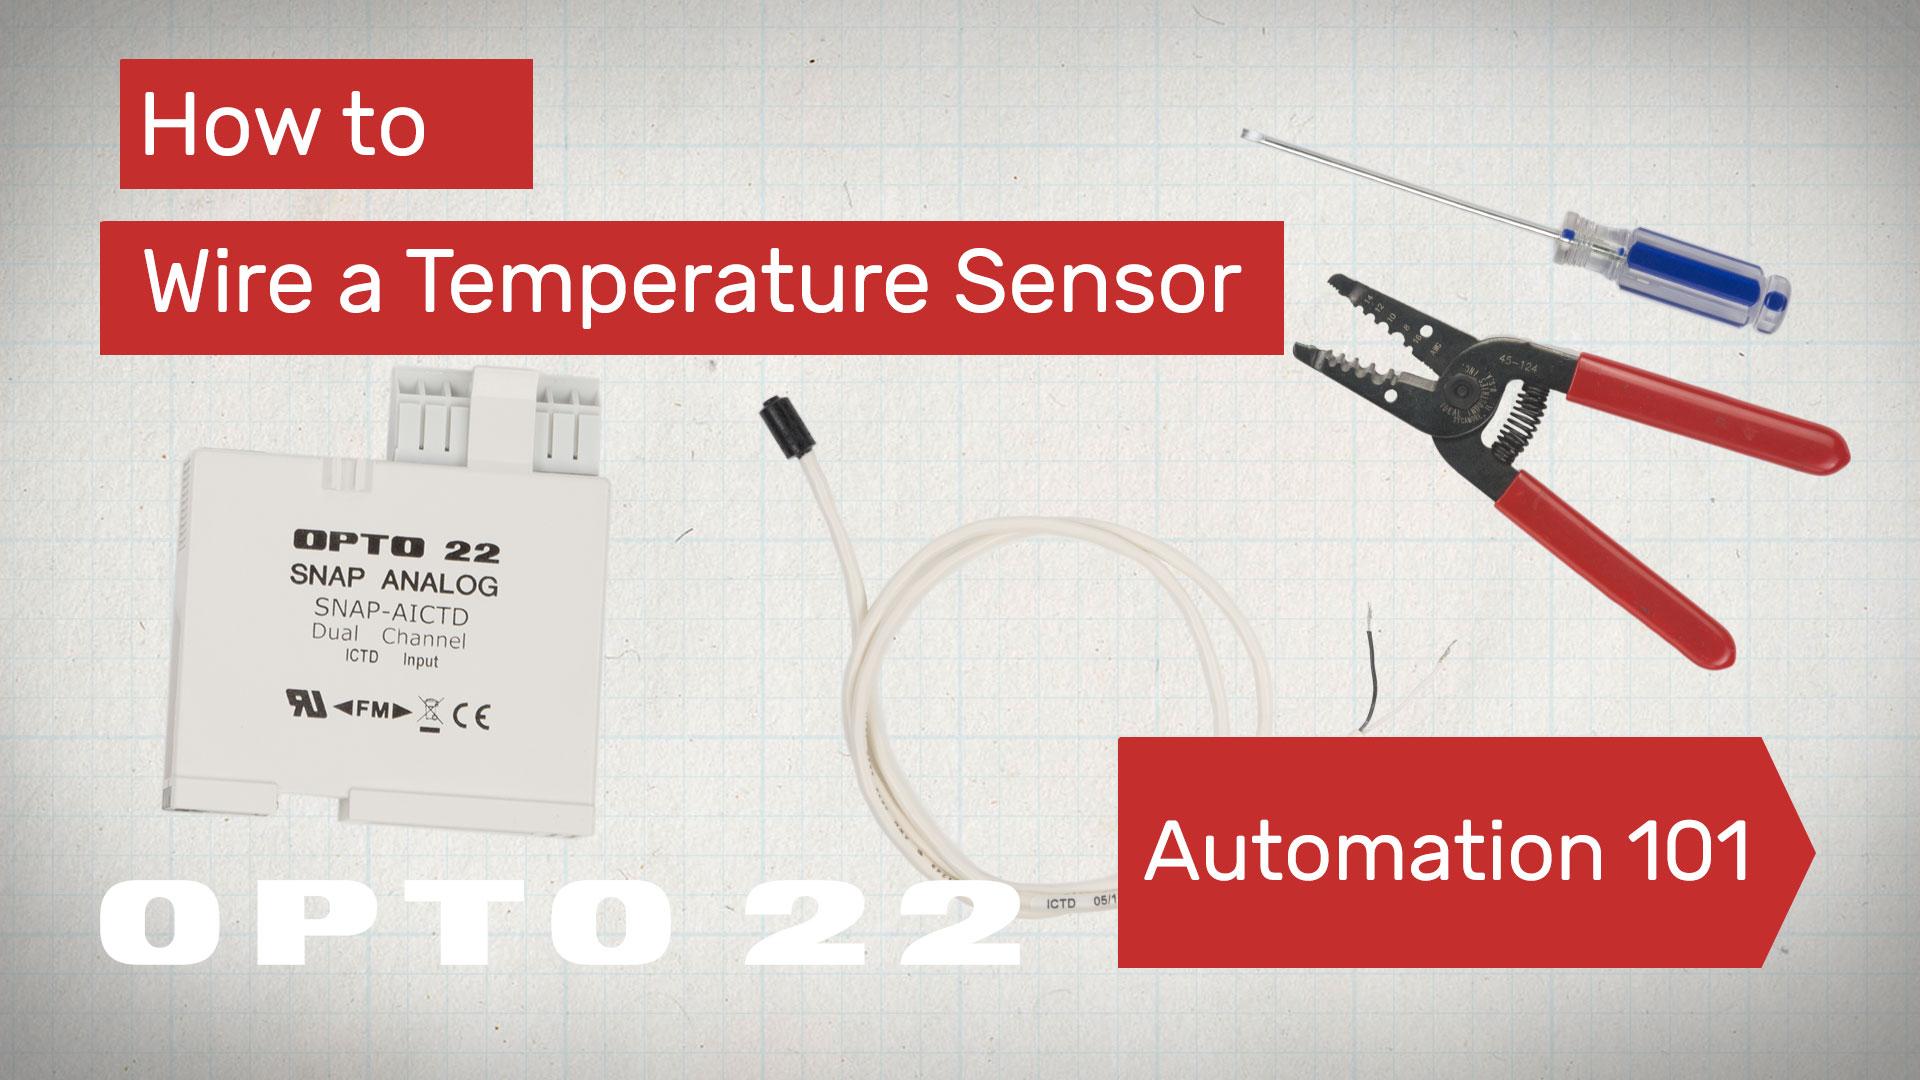 Wire A Temperature Sensor Automation 101 Video G4oac5 Opto 22 Wiring Diagram